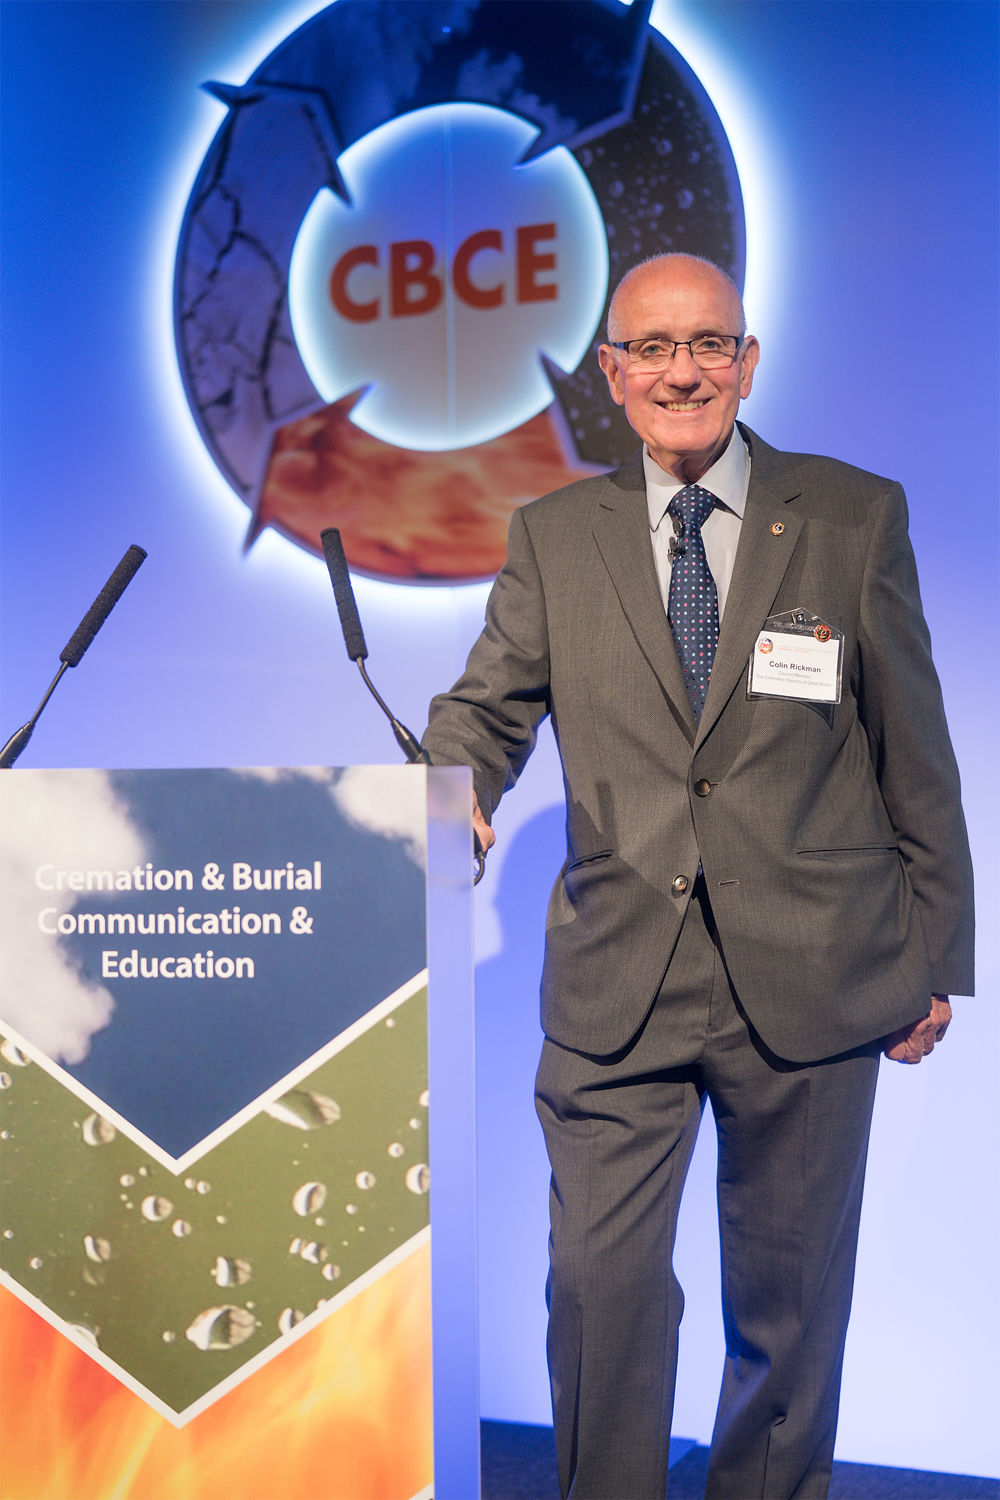 Colin Rickman - Council member of The Cremation Society of Great Britain